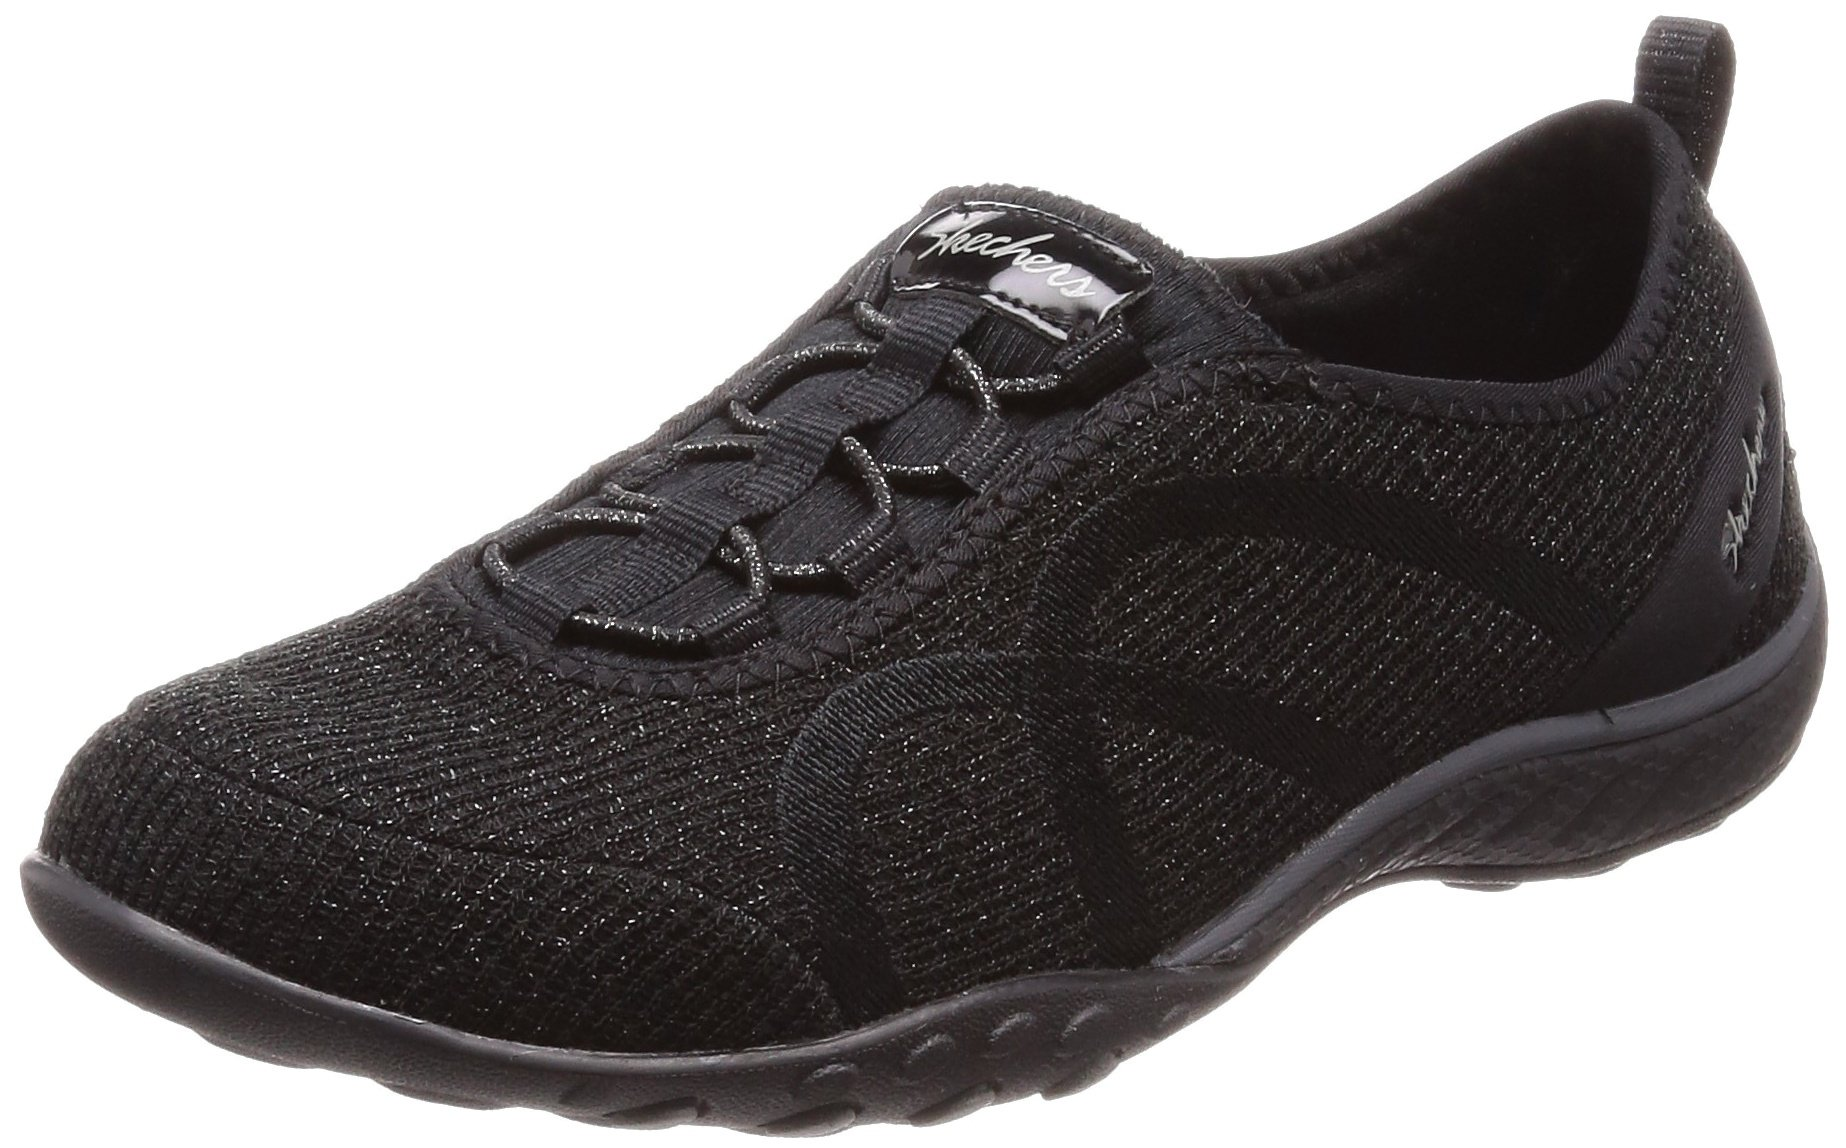 Skechers Relaxed Fit Breathe Easy Star Search Womens Slip On Sneakers,Black,9.5